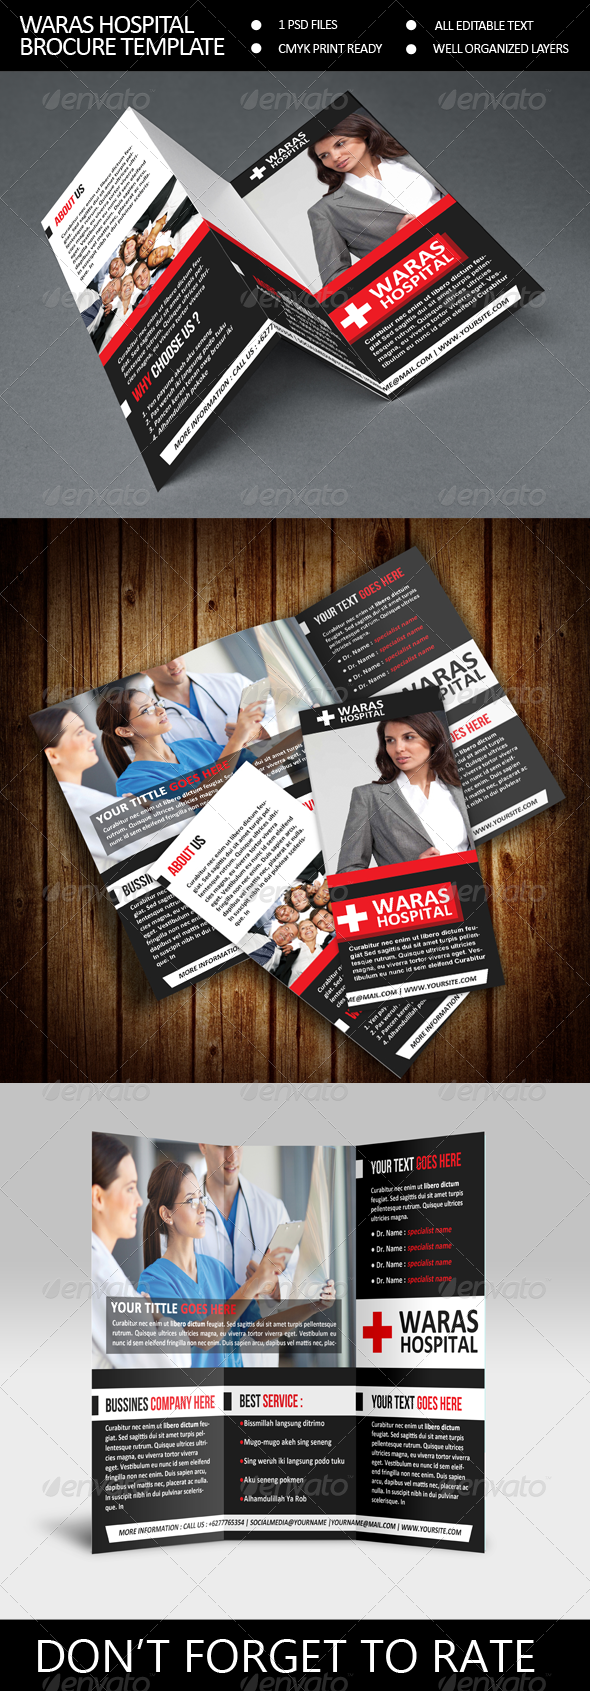 Waras Hospital Trifold Brocure Template